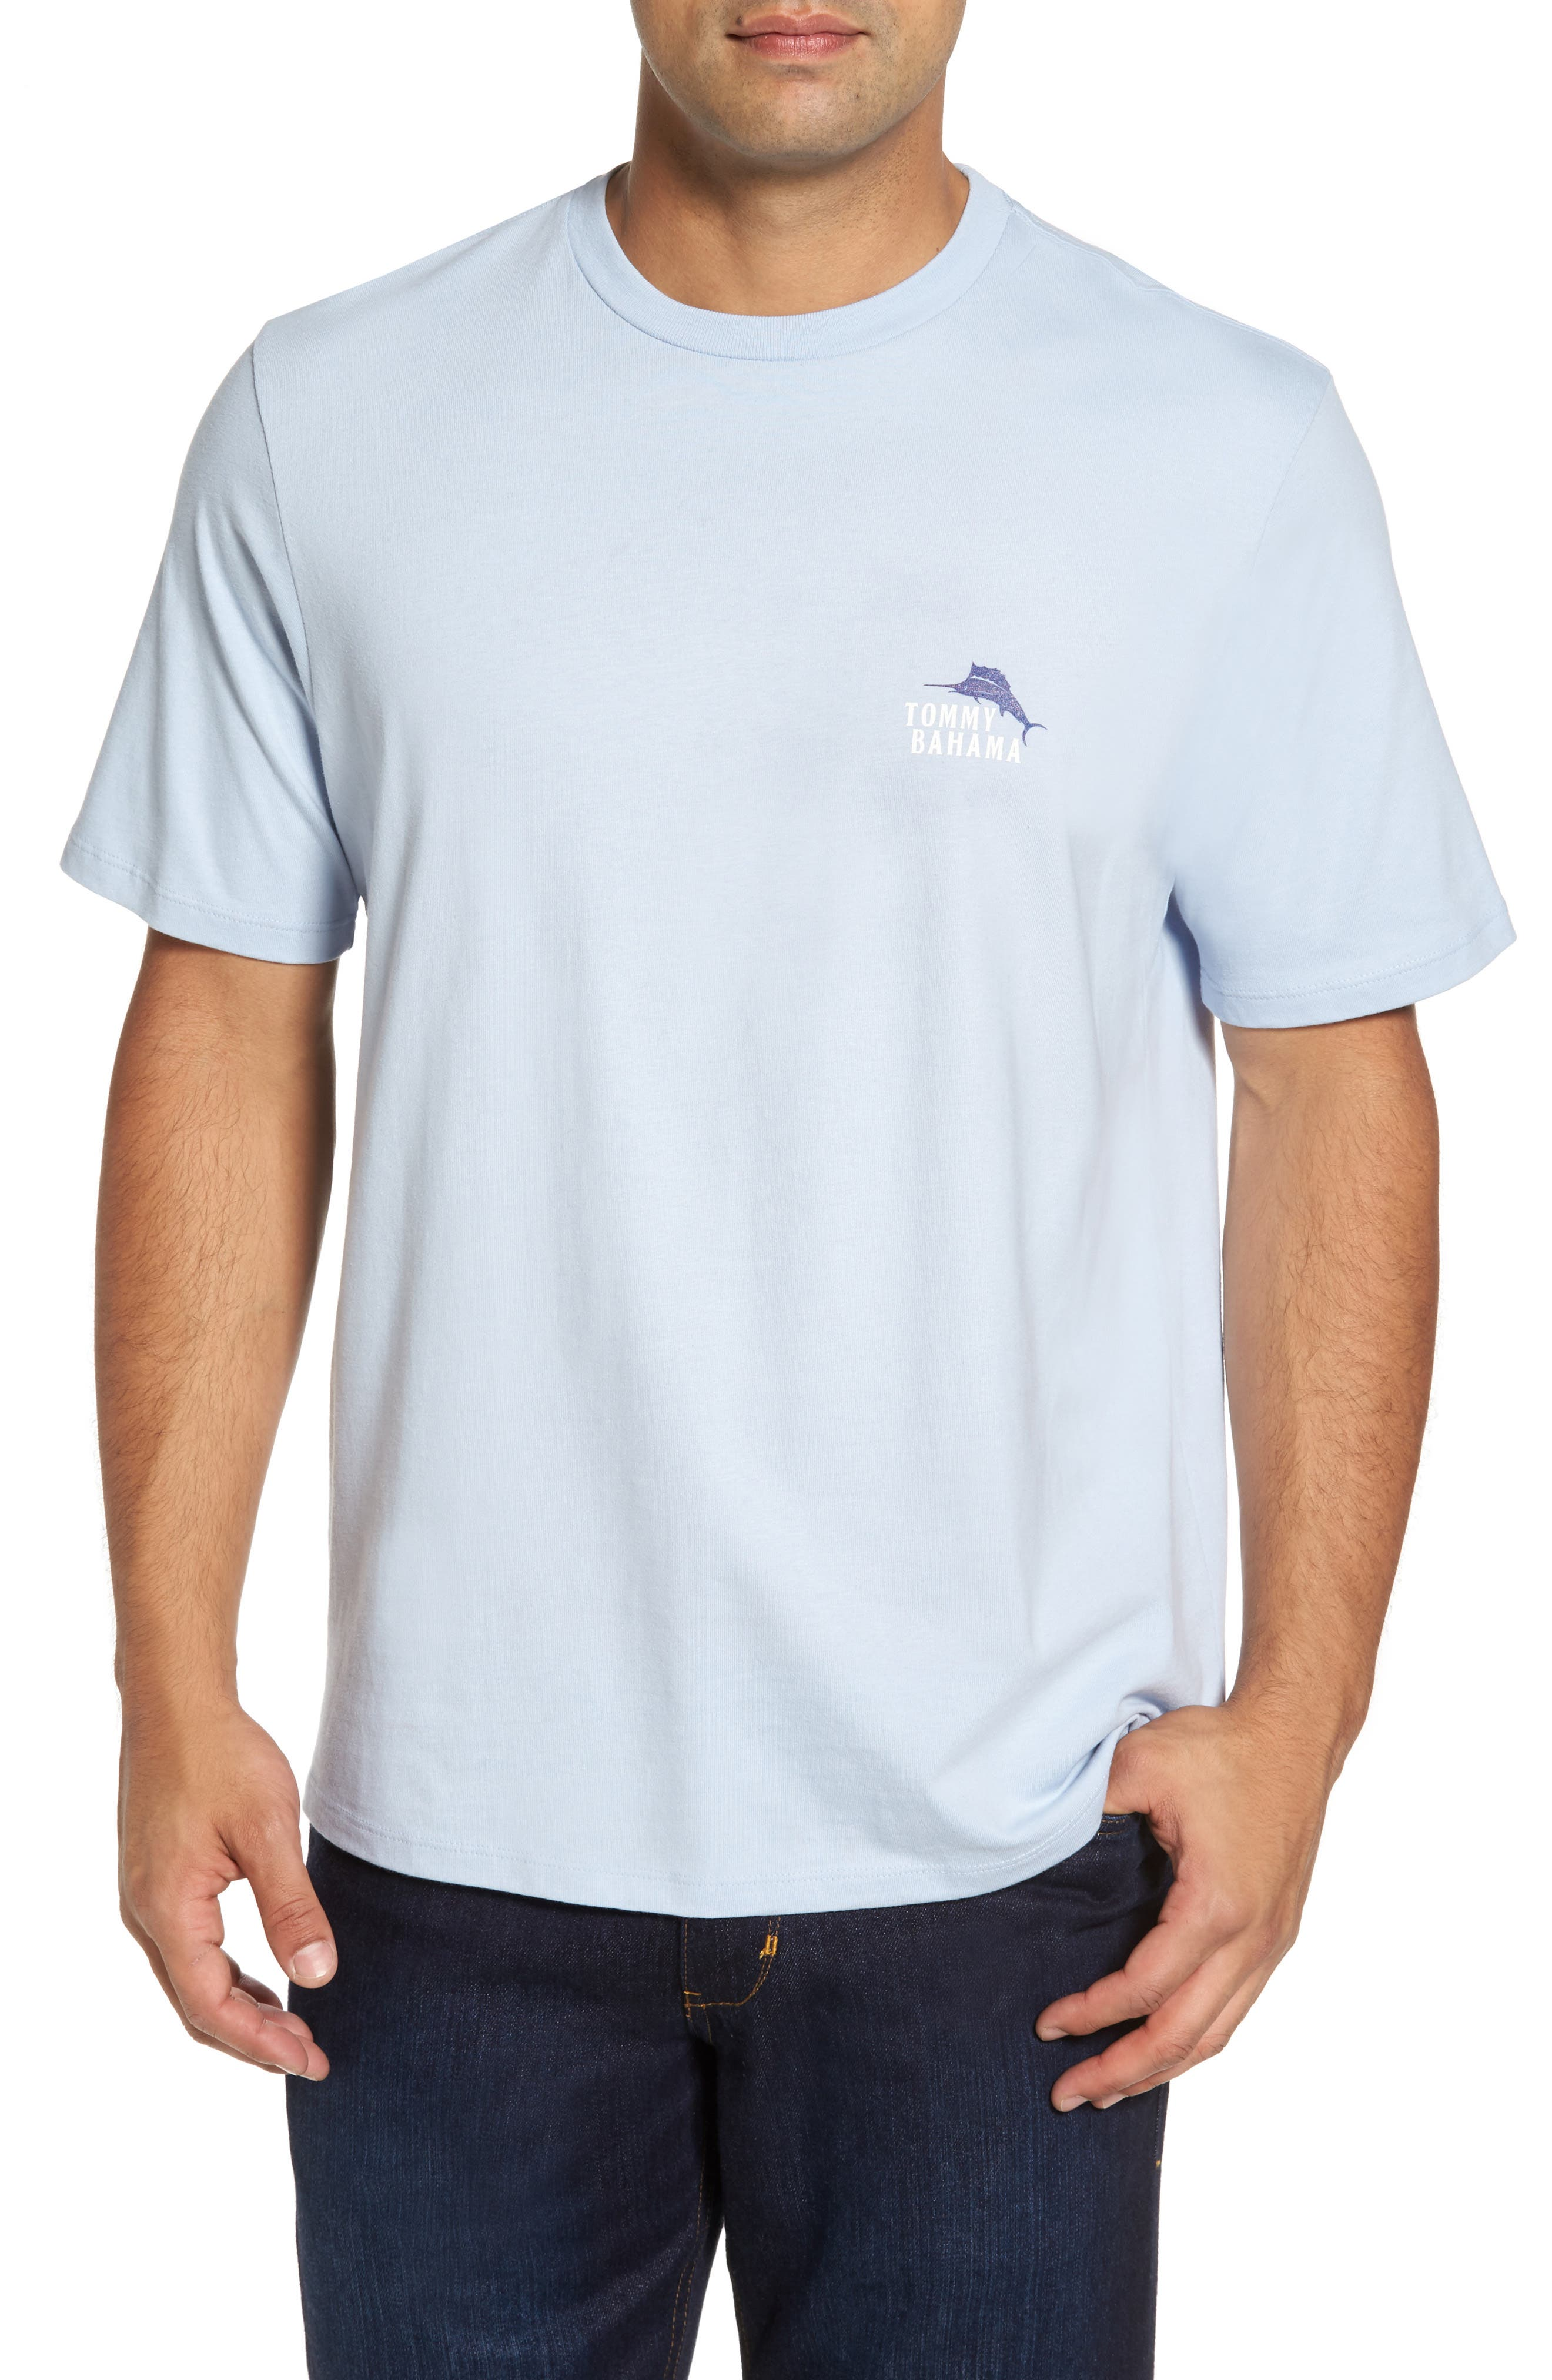 Casting Call Standard Fit T-Shirt,                         Main,                         color, 400